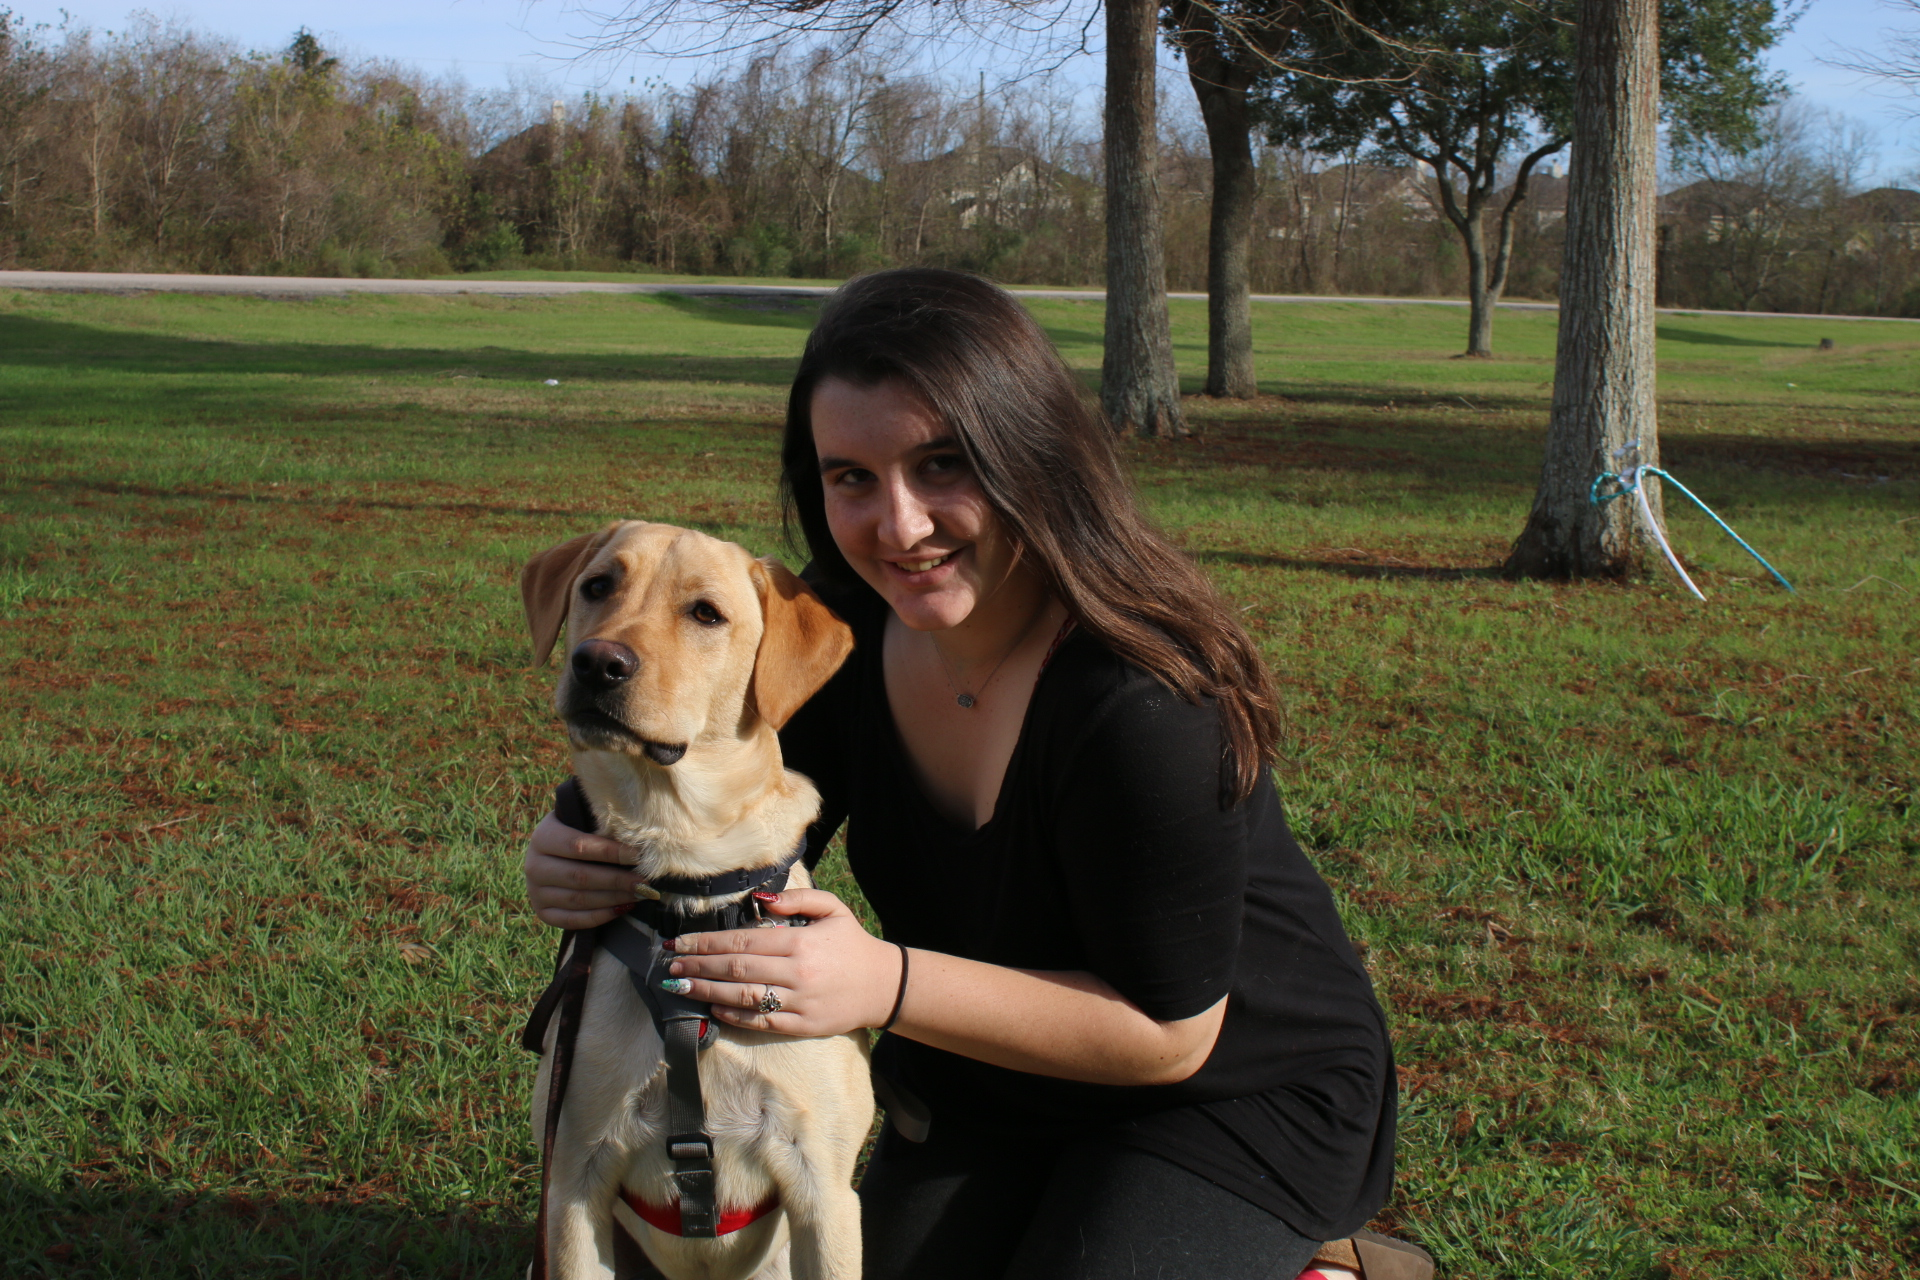 High school junior Serena Maher wanted to bring her service dog Max to school after the winter break. The Fort Bend Independent School District delayed his arrival to notify other students.